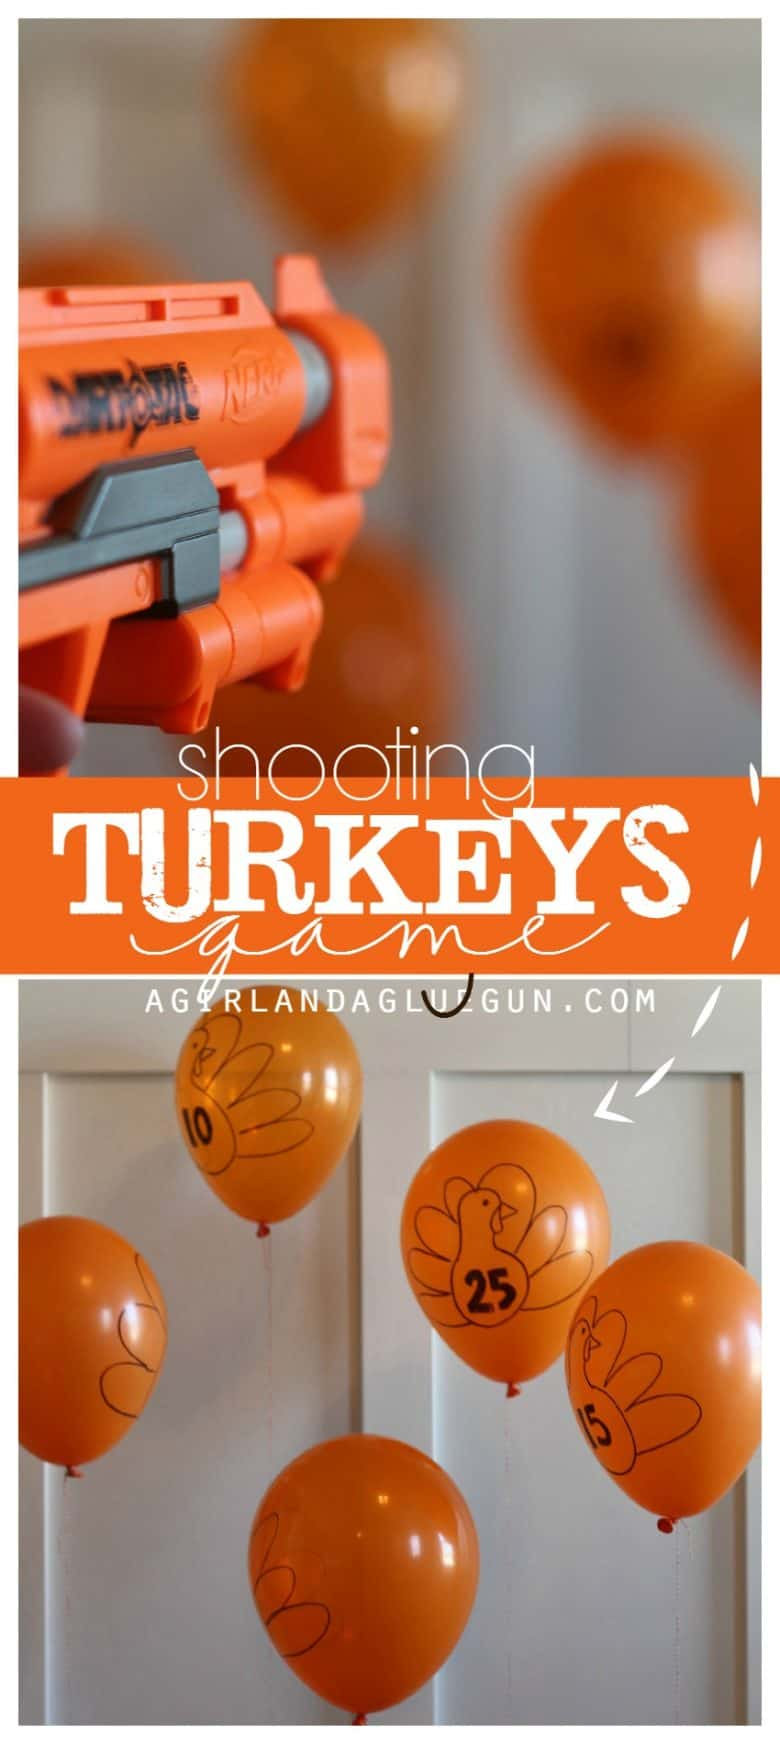 turkey-shoot-game2